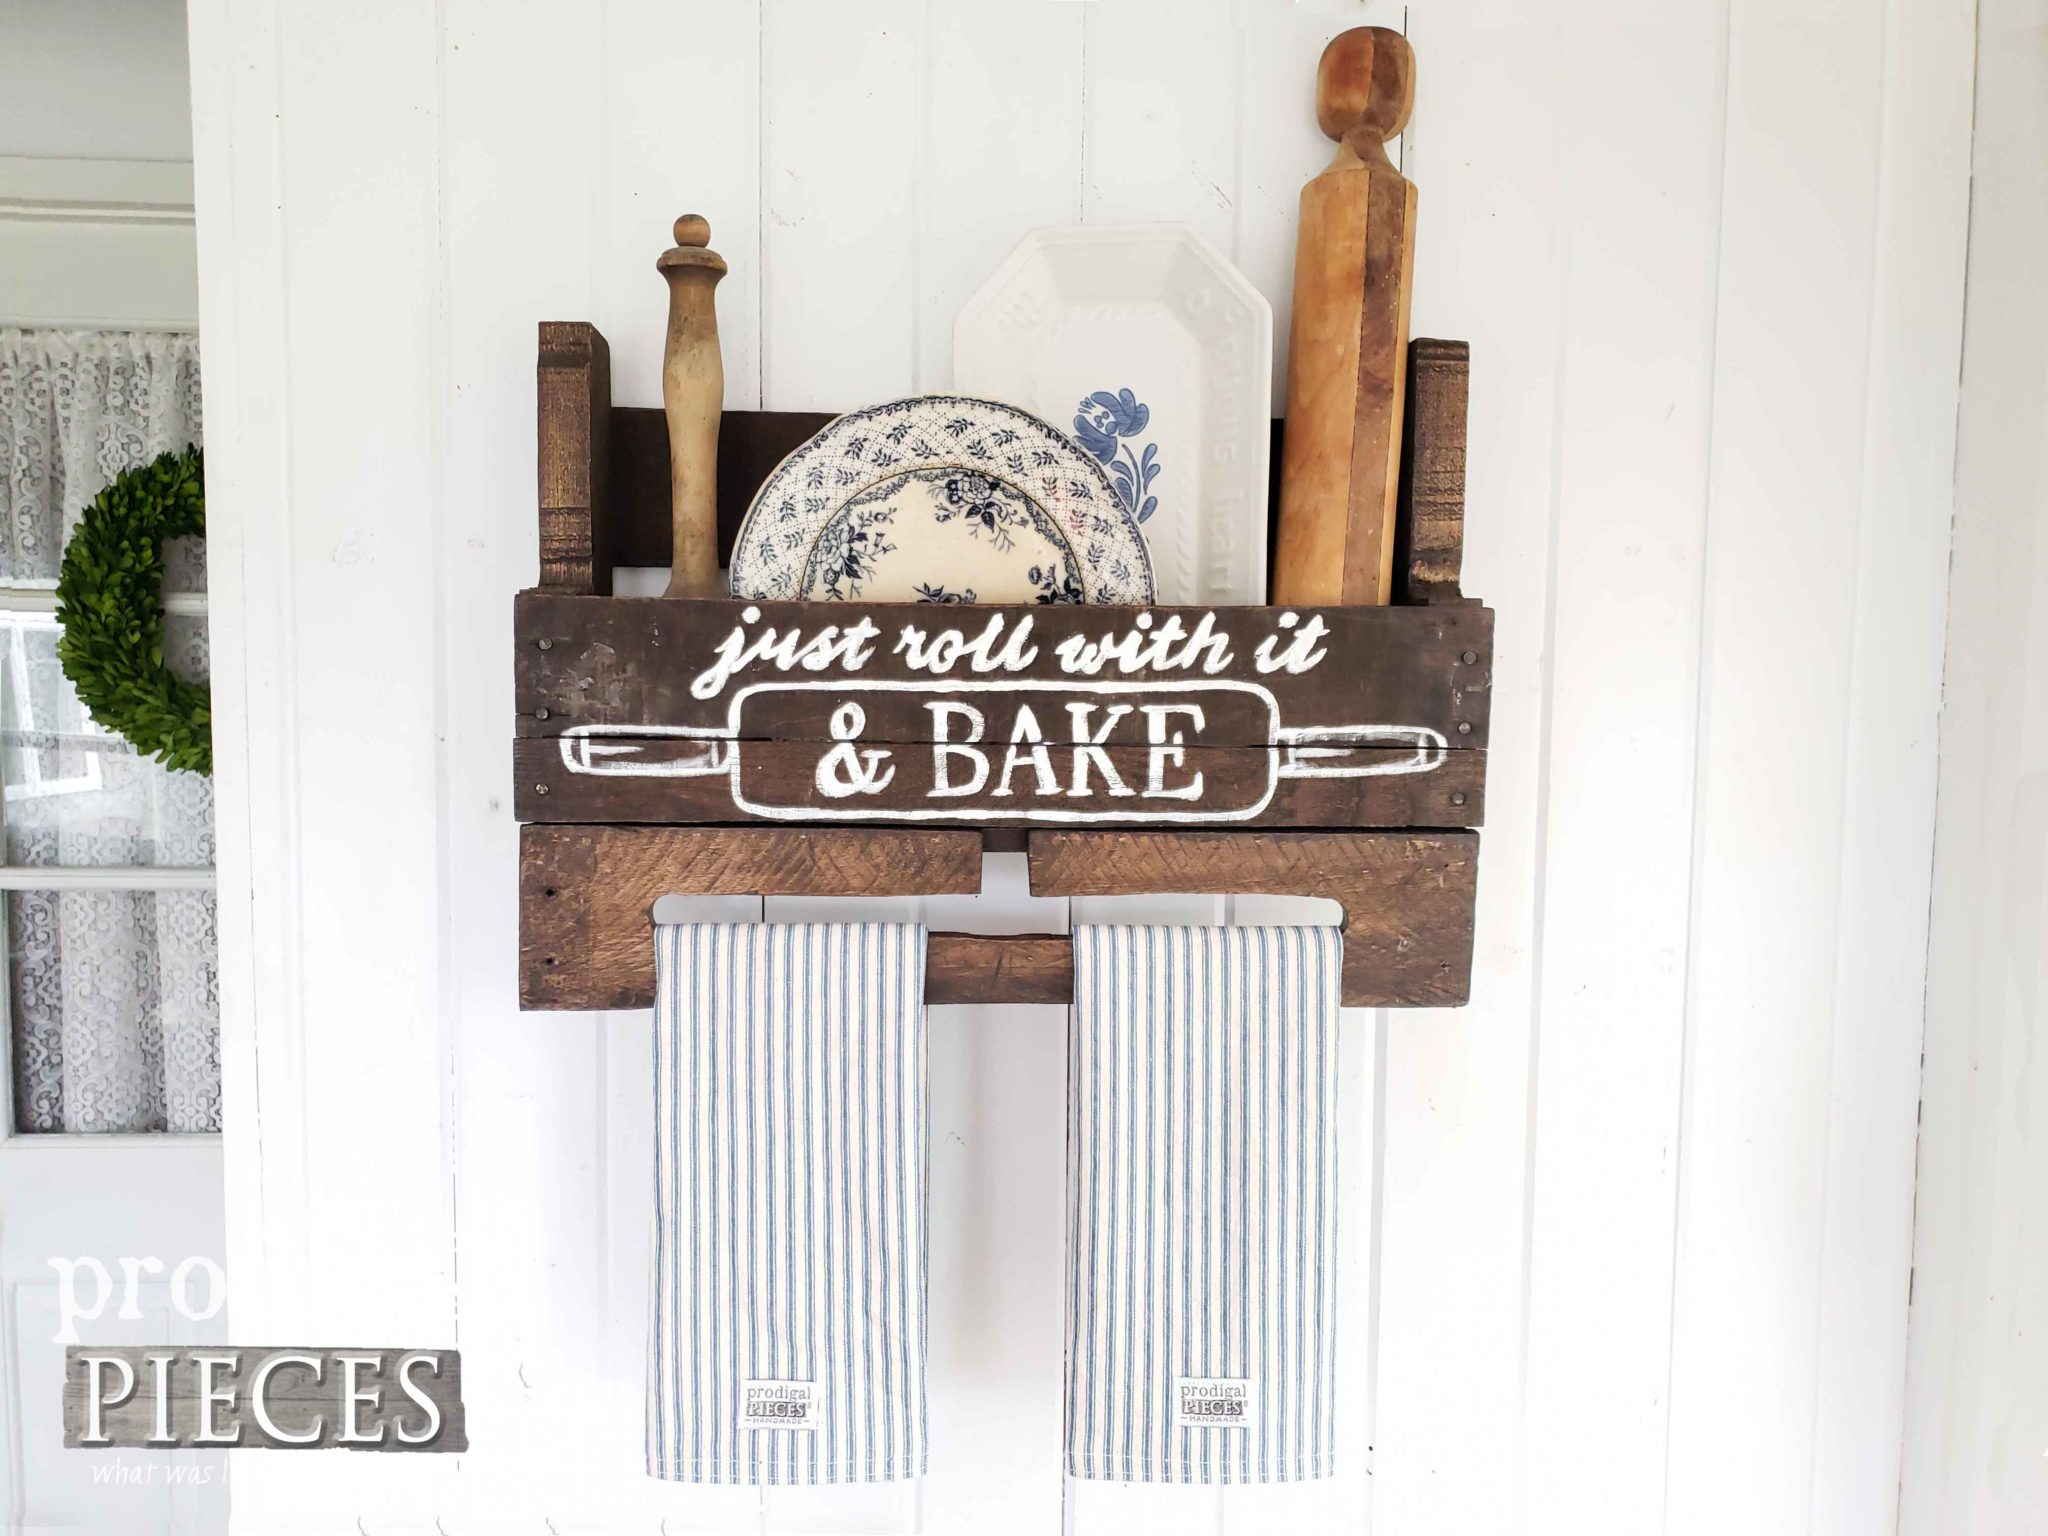 Farmhouse Style Kitchen Towel Rack with Storage Created from an Upcycled Pallet by Larissa of Prodigal Pieces | prodigalpieces.com #prodigalpieces #diy #handmade #farmhouse #home #homedecor